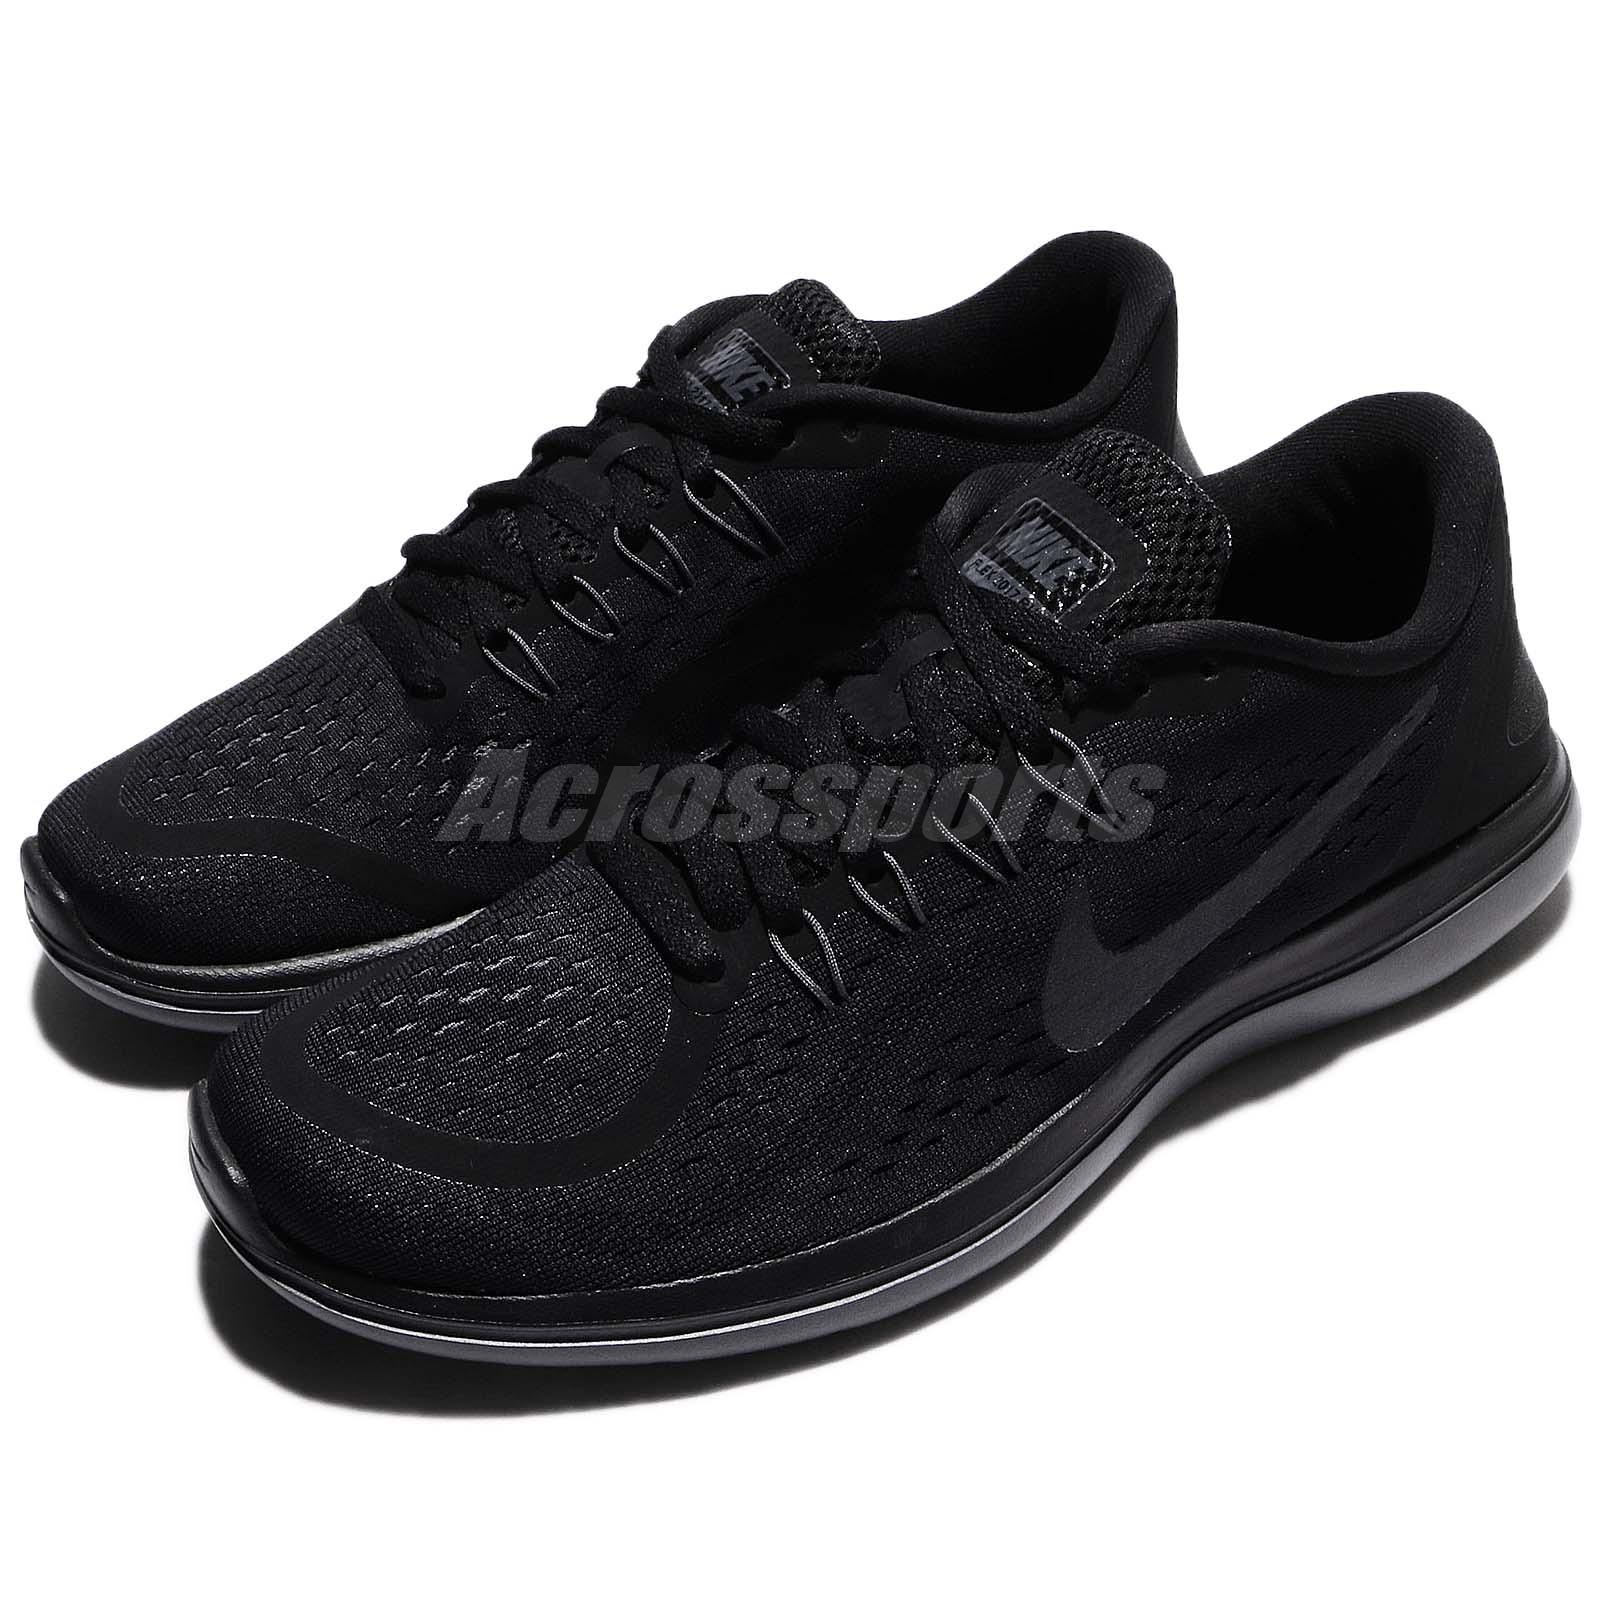 579abb45b2bc Details about Nike Flex 2017 RN Run Black Men Running Shoes Sneakers  898457-005